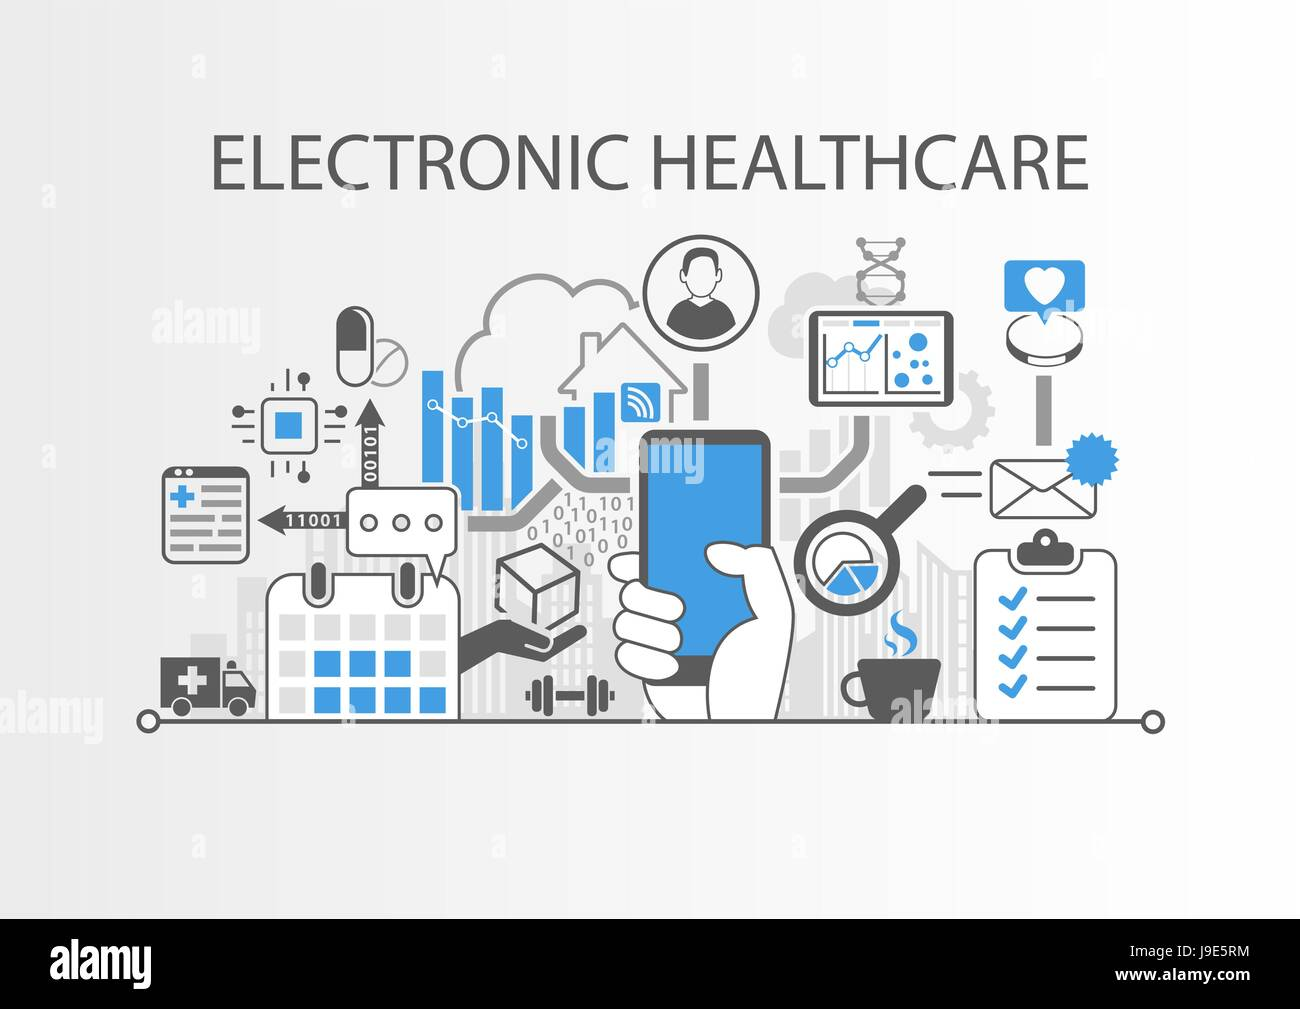 Electronic healthcare or e-health background vector illustration - Stock Image